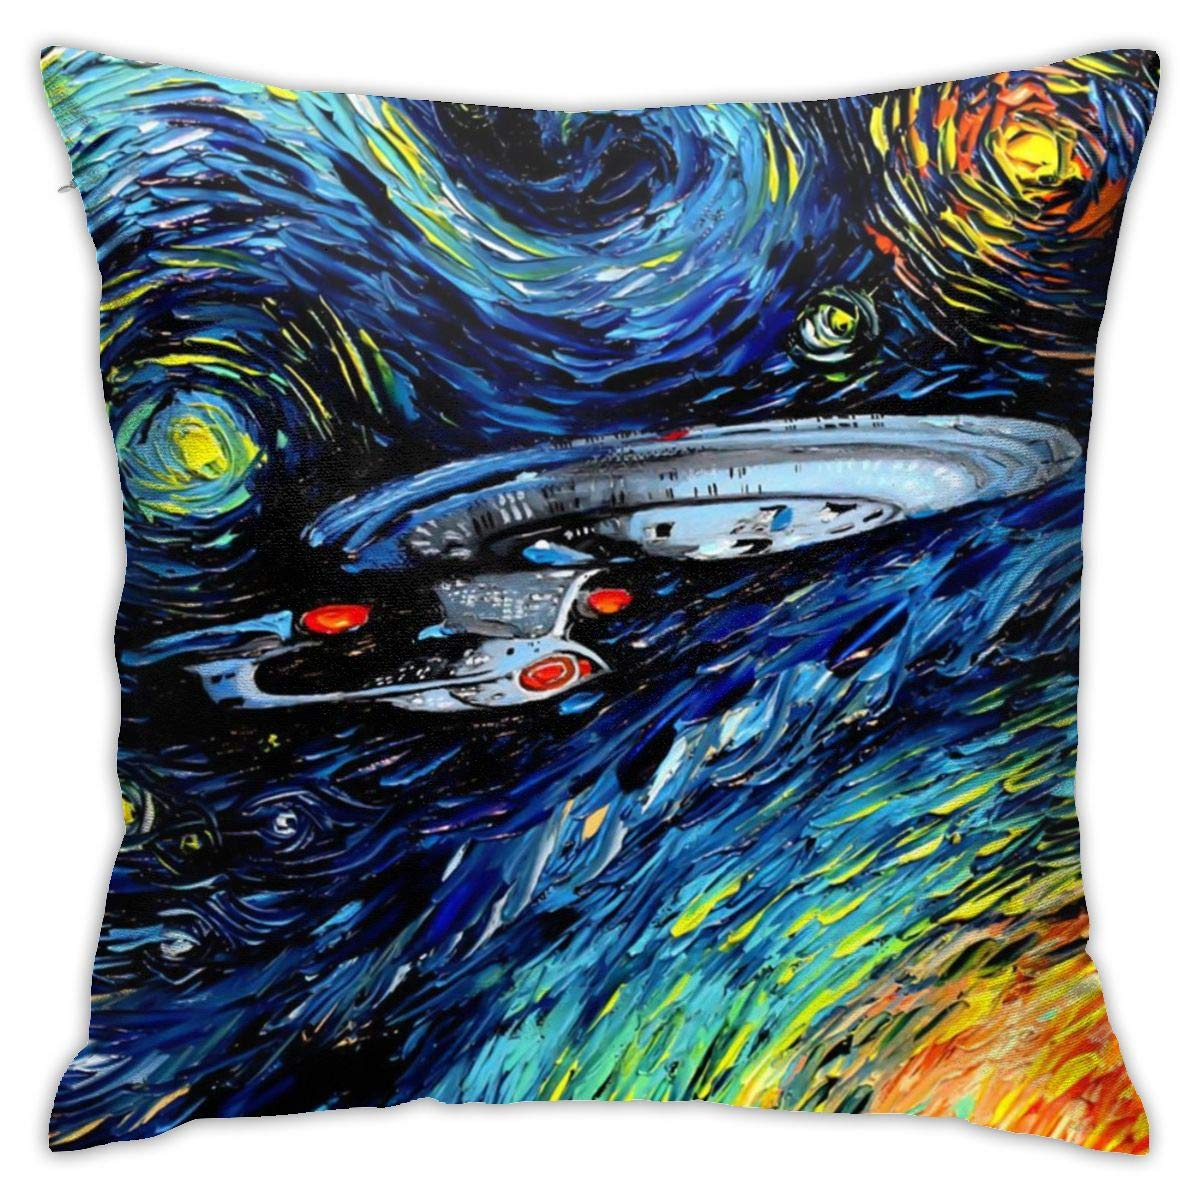 Fall Home Decorative Throw Pillow Covers 18x18 Inch, Allergy Control, Star Trek Oil Painting Art Pillow Case Cushion Cover for Office Holidays Halloween